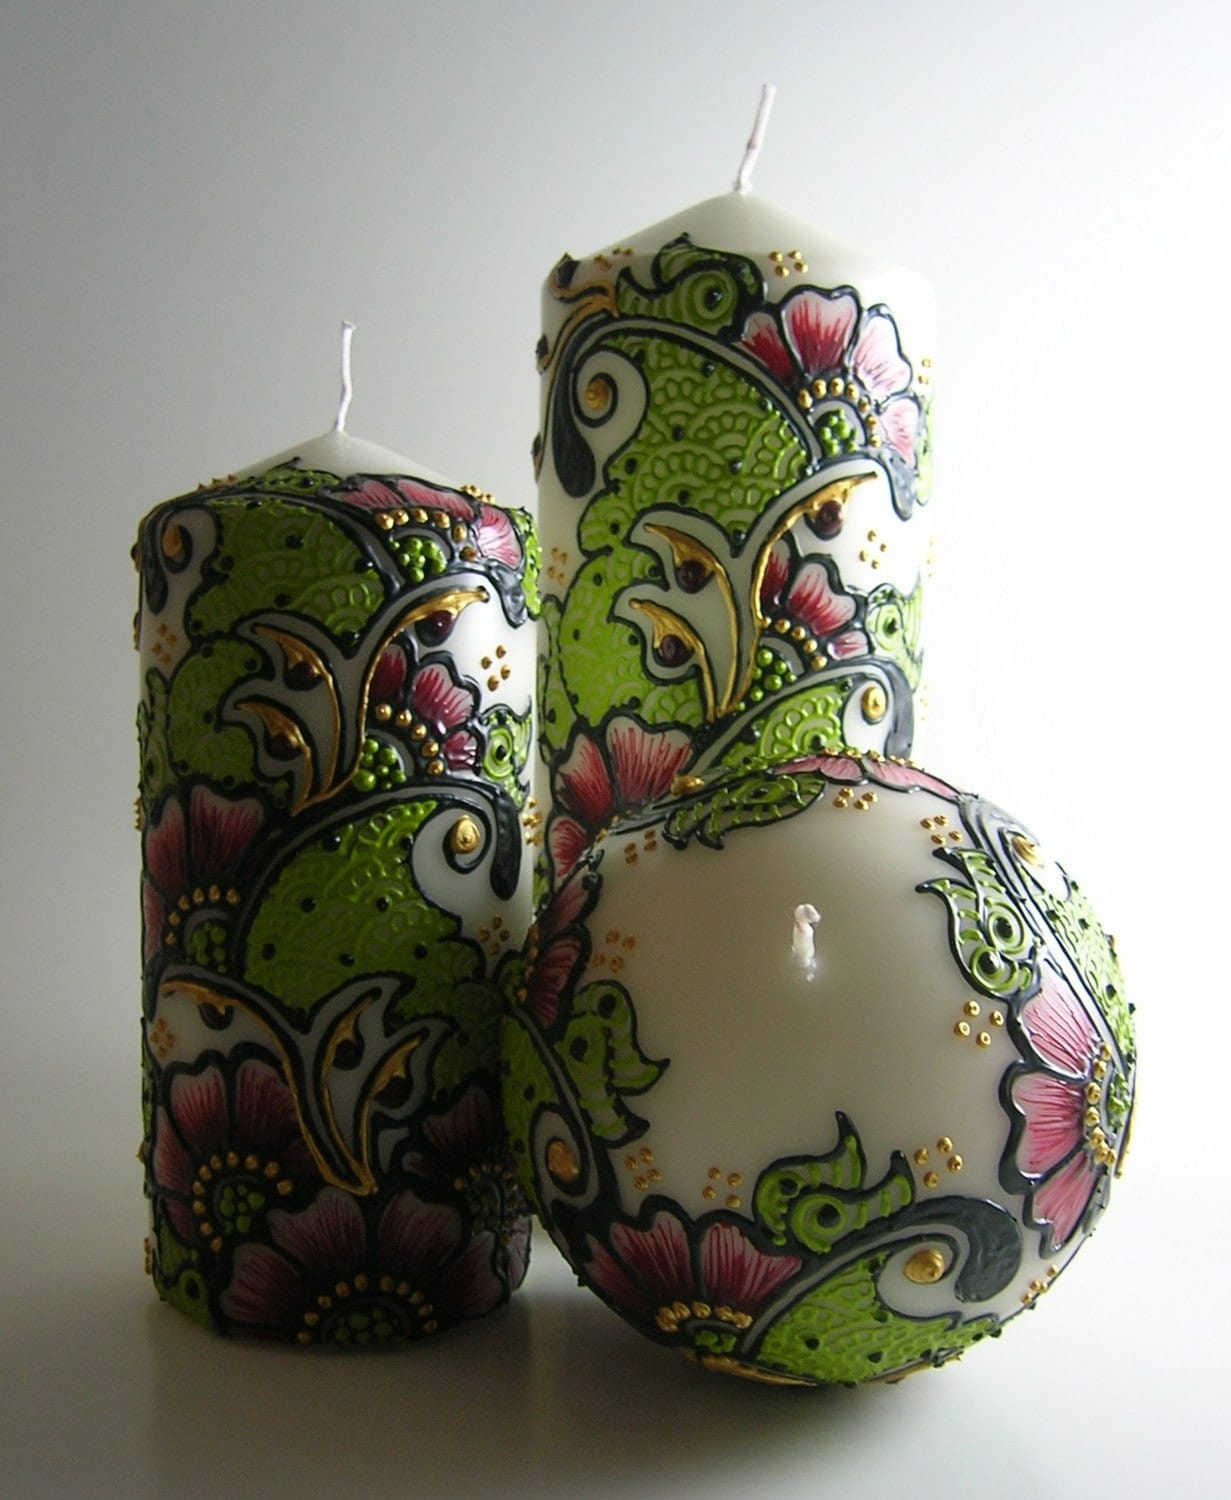 set of 3 henna inspired candles in cranberry red, pea green and buttery gold